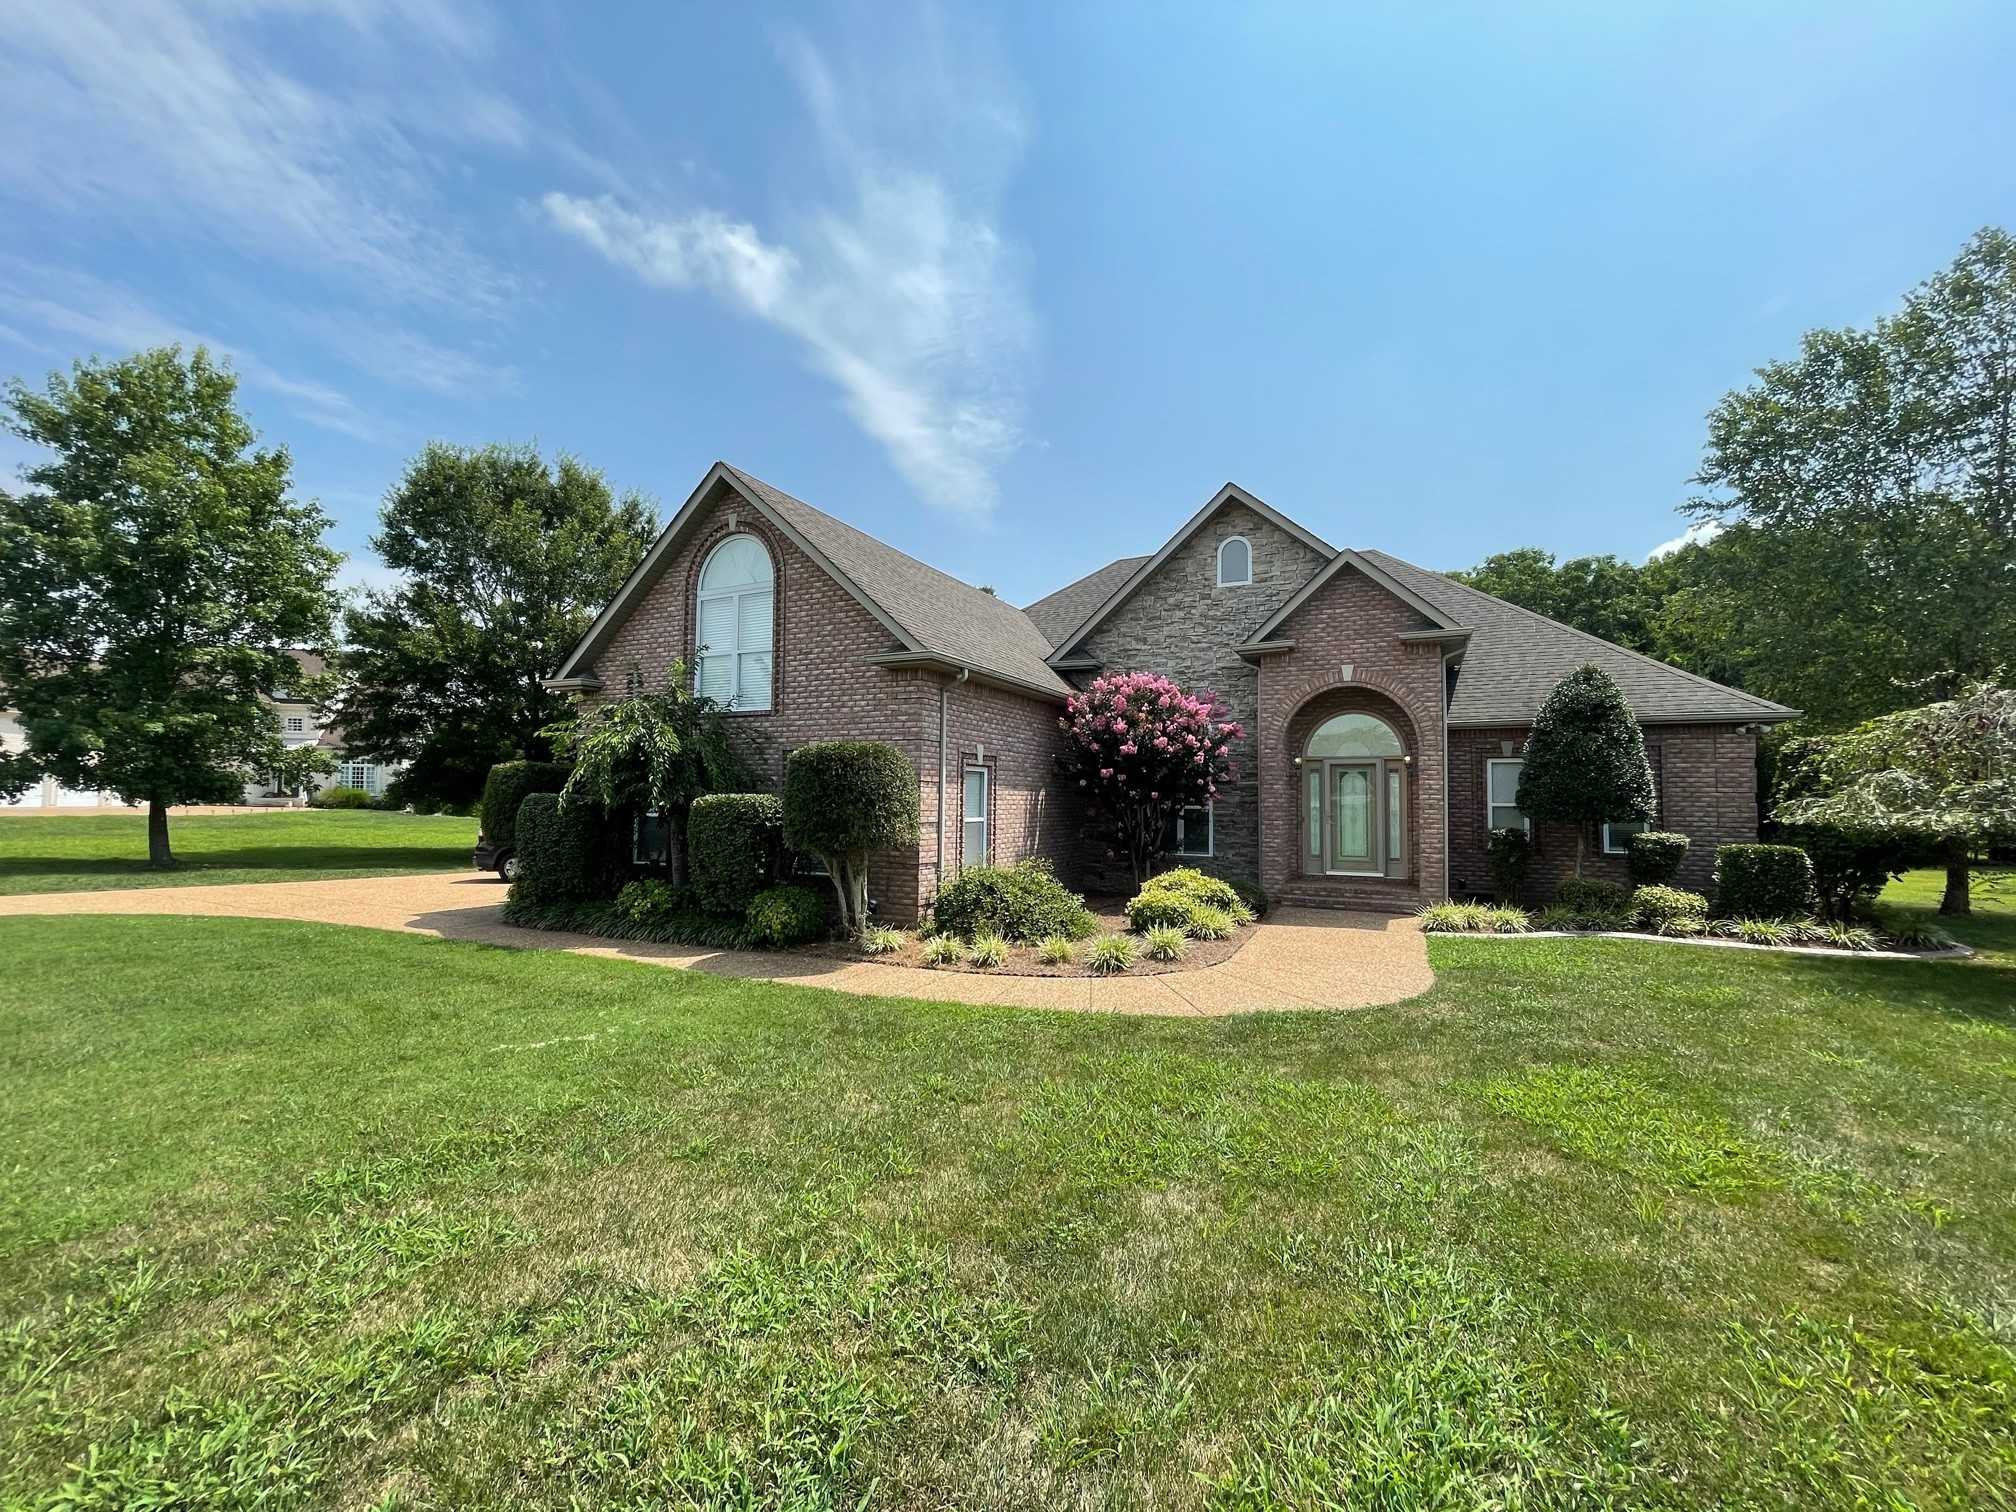 $950,000 - 3Br/4Ba -  for Sale in Bartons Cove Amended, Lebanon